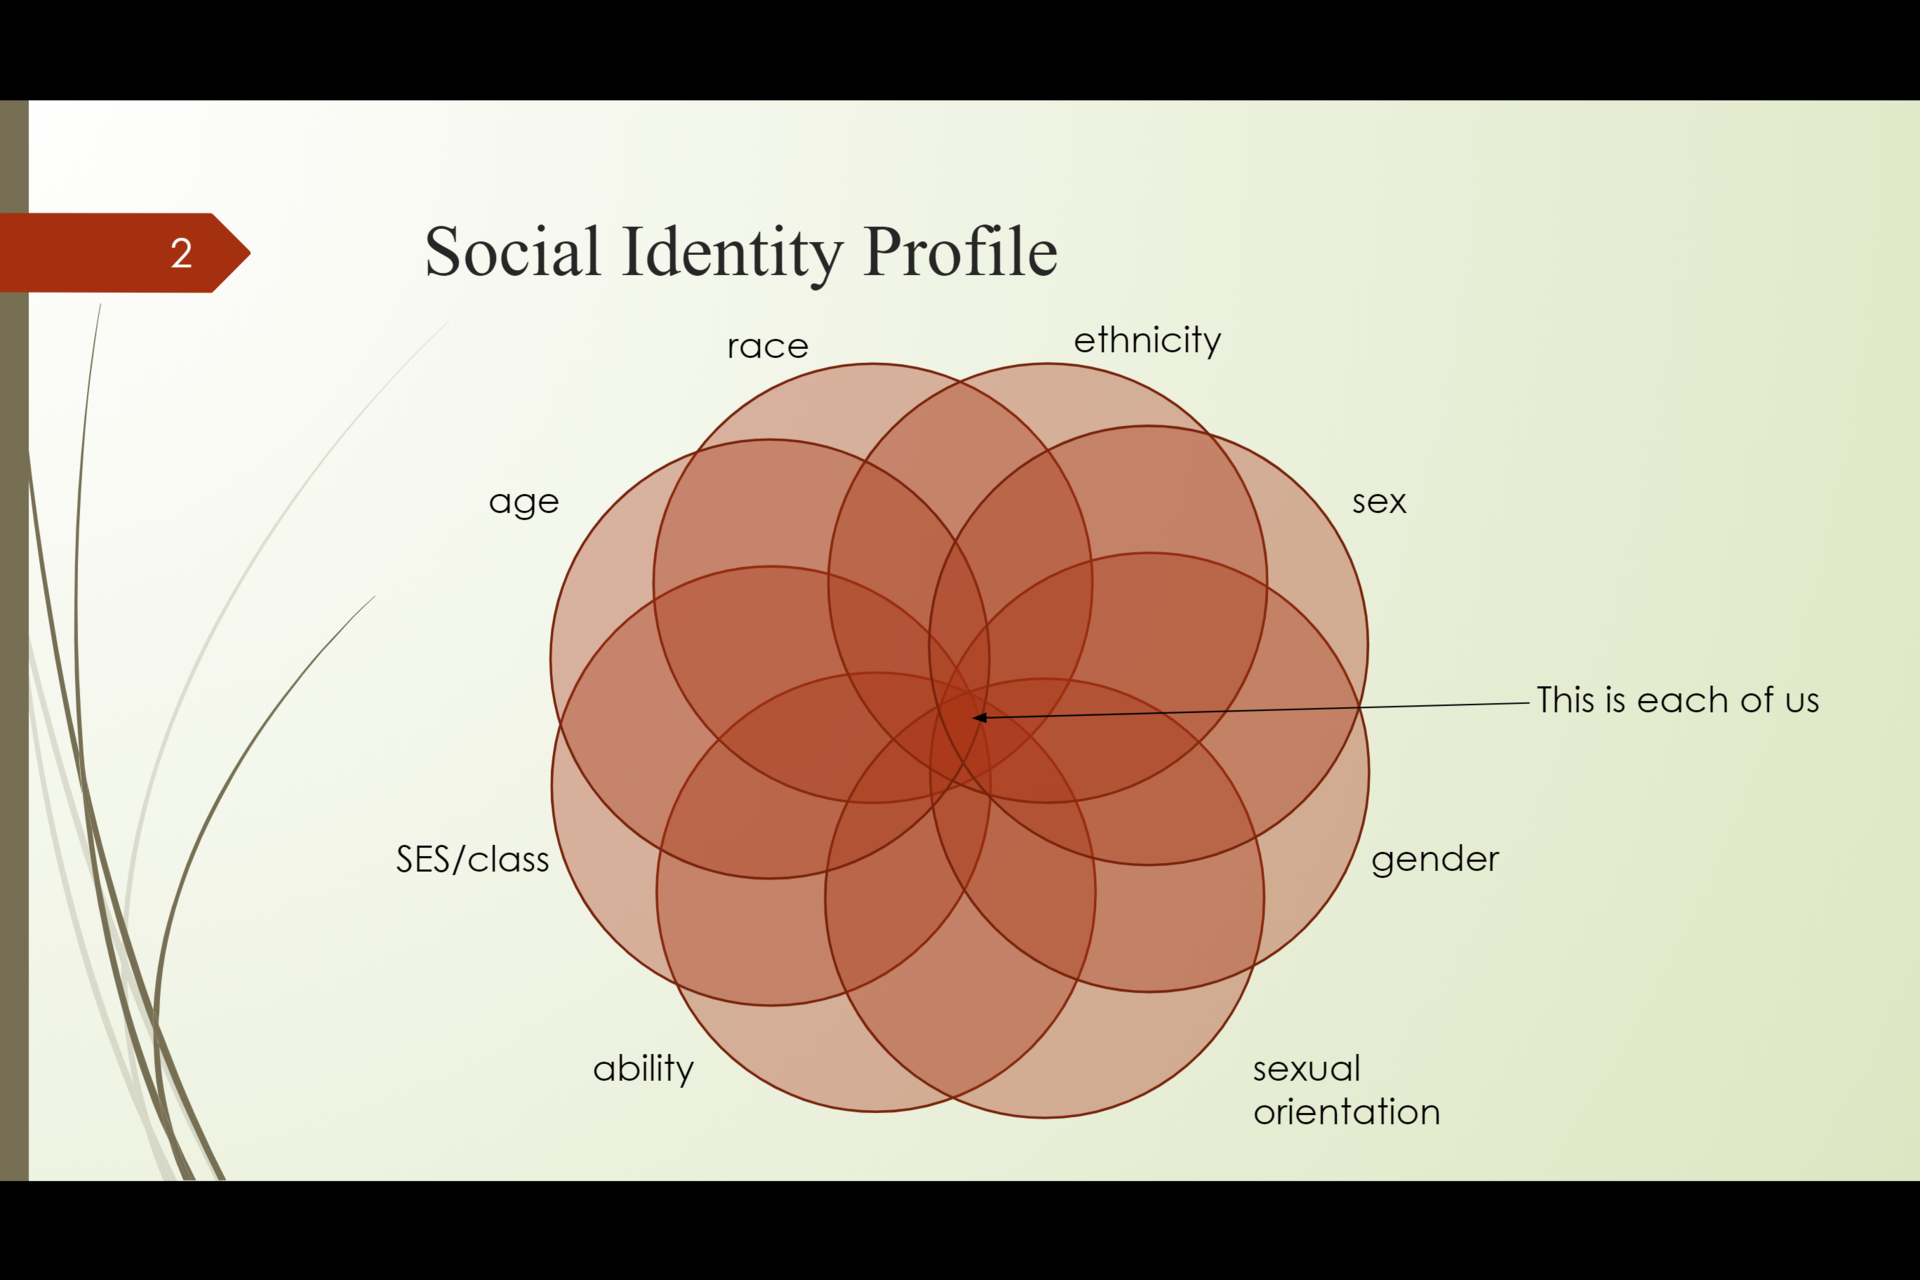 Social identity profile: all people have a 'social identity profile' that consists of different pieces of our identity (e.g., race, ethnicity, sex, gender, sexual orientation, ability, SES/class, age)